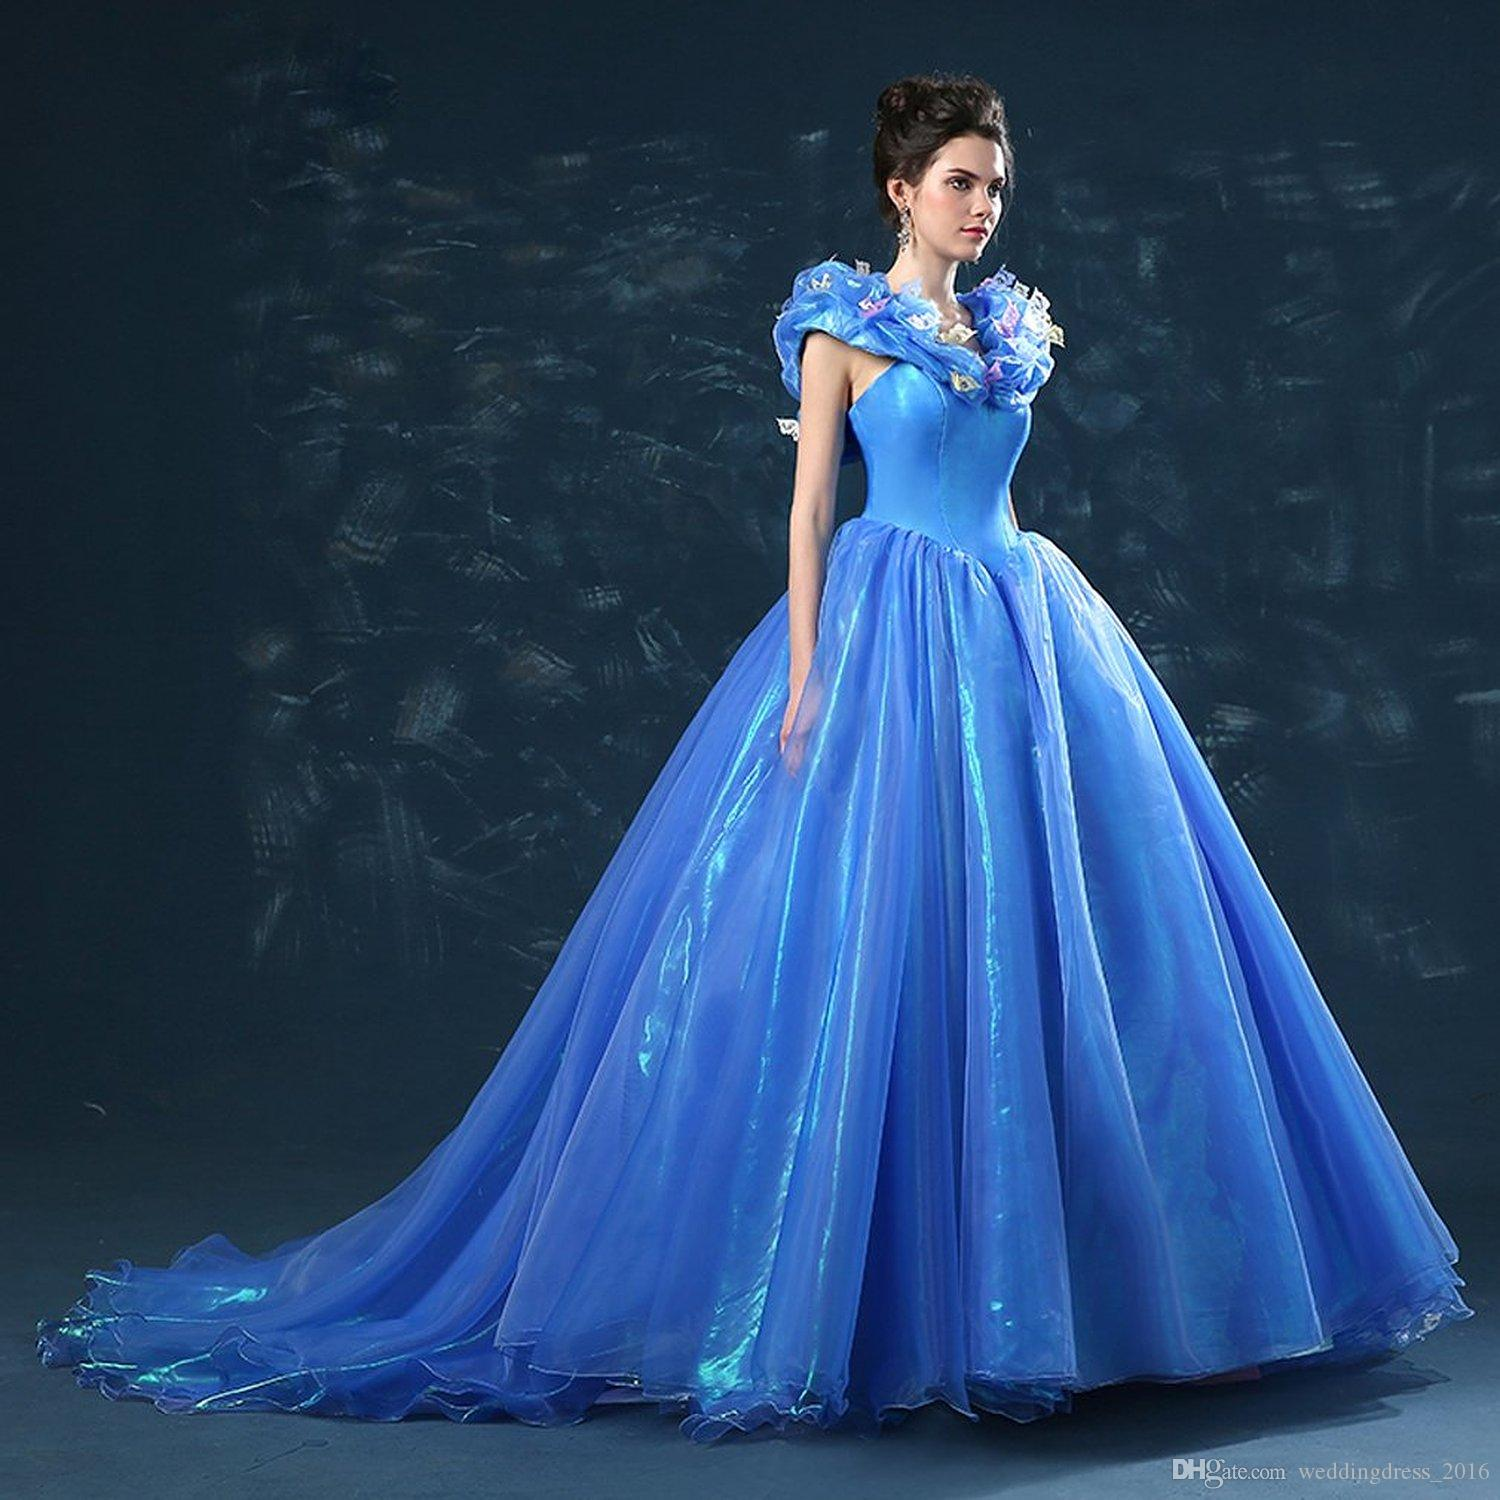 Cinderella Ball Gowns Women Evening Dresses Custom Made Long Prom Dresses Sweet 16 Quinceanera